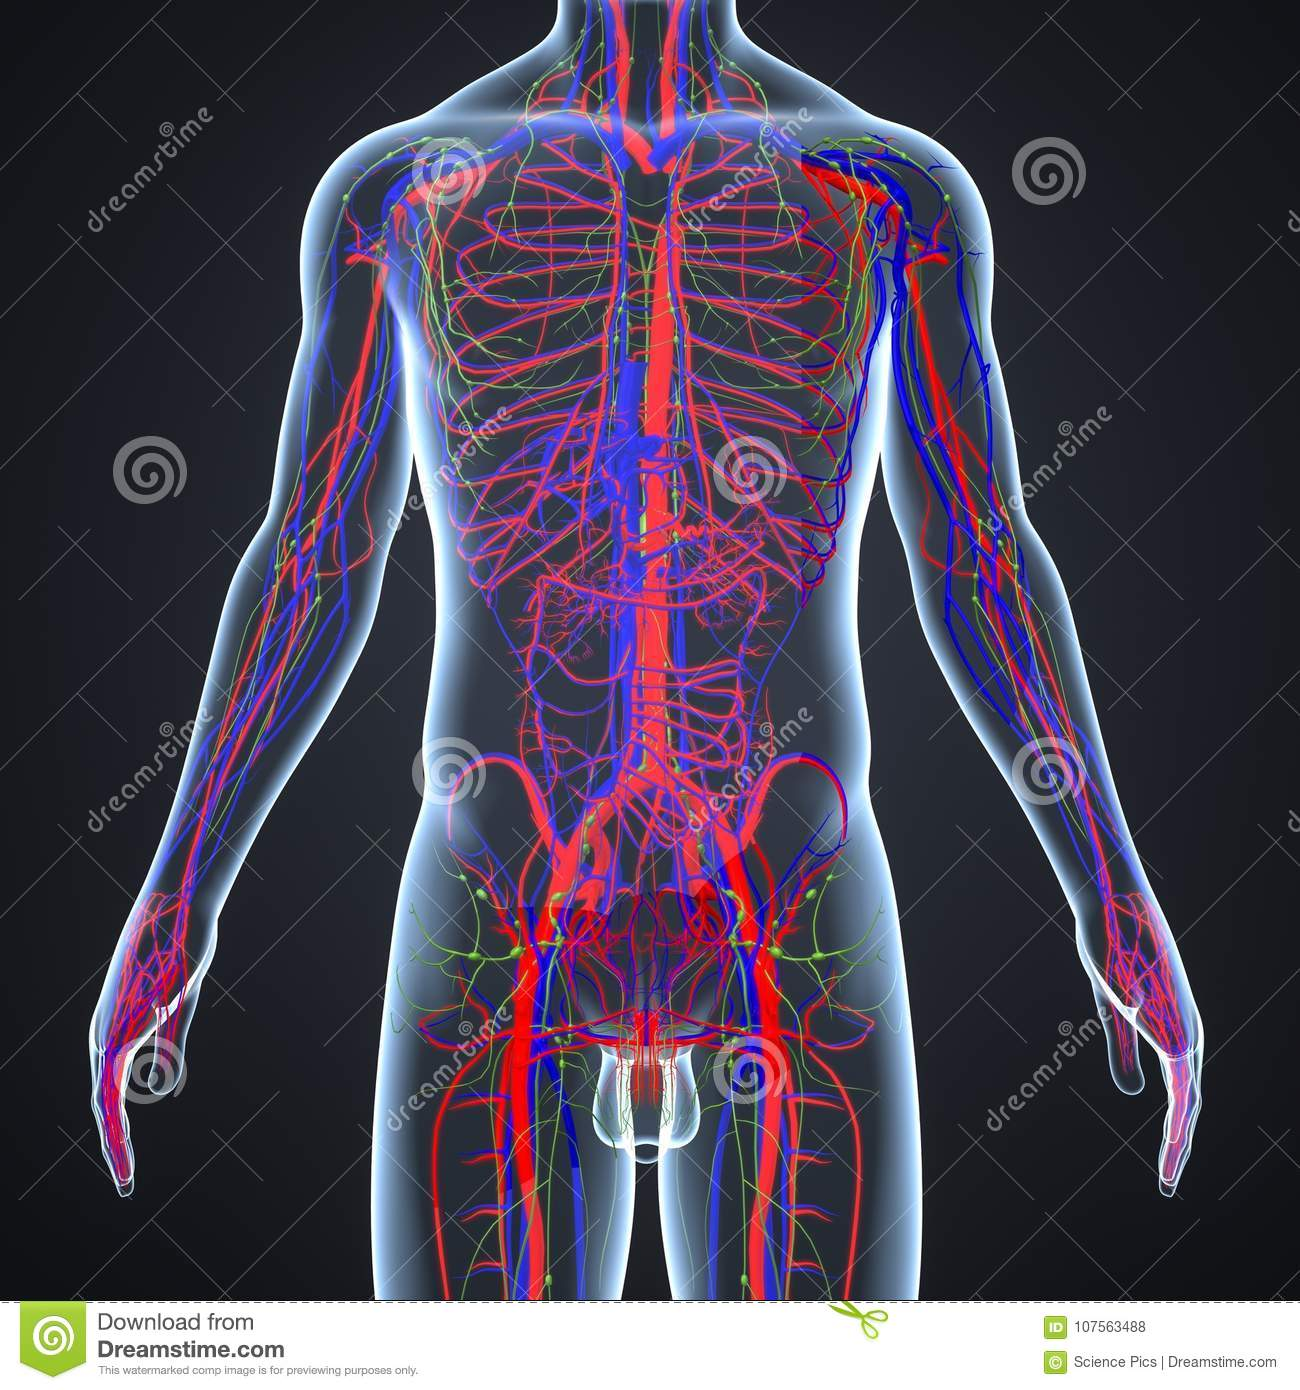 Arteries Veins And Lymphnodes With Human Body Stock Illustration